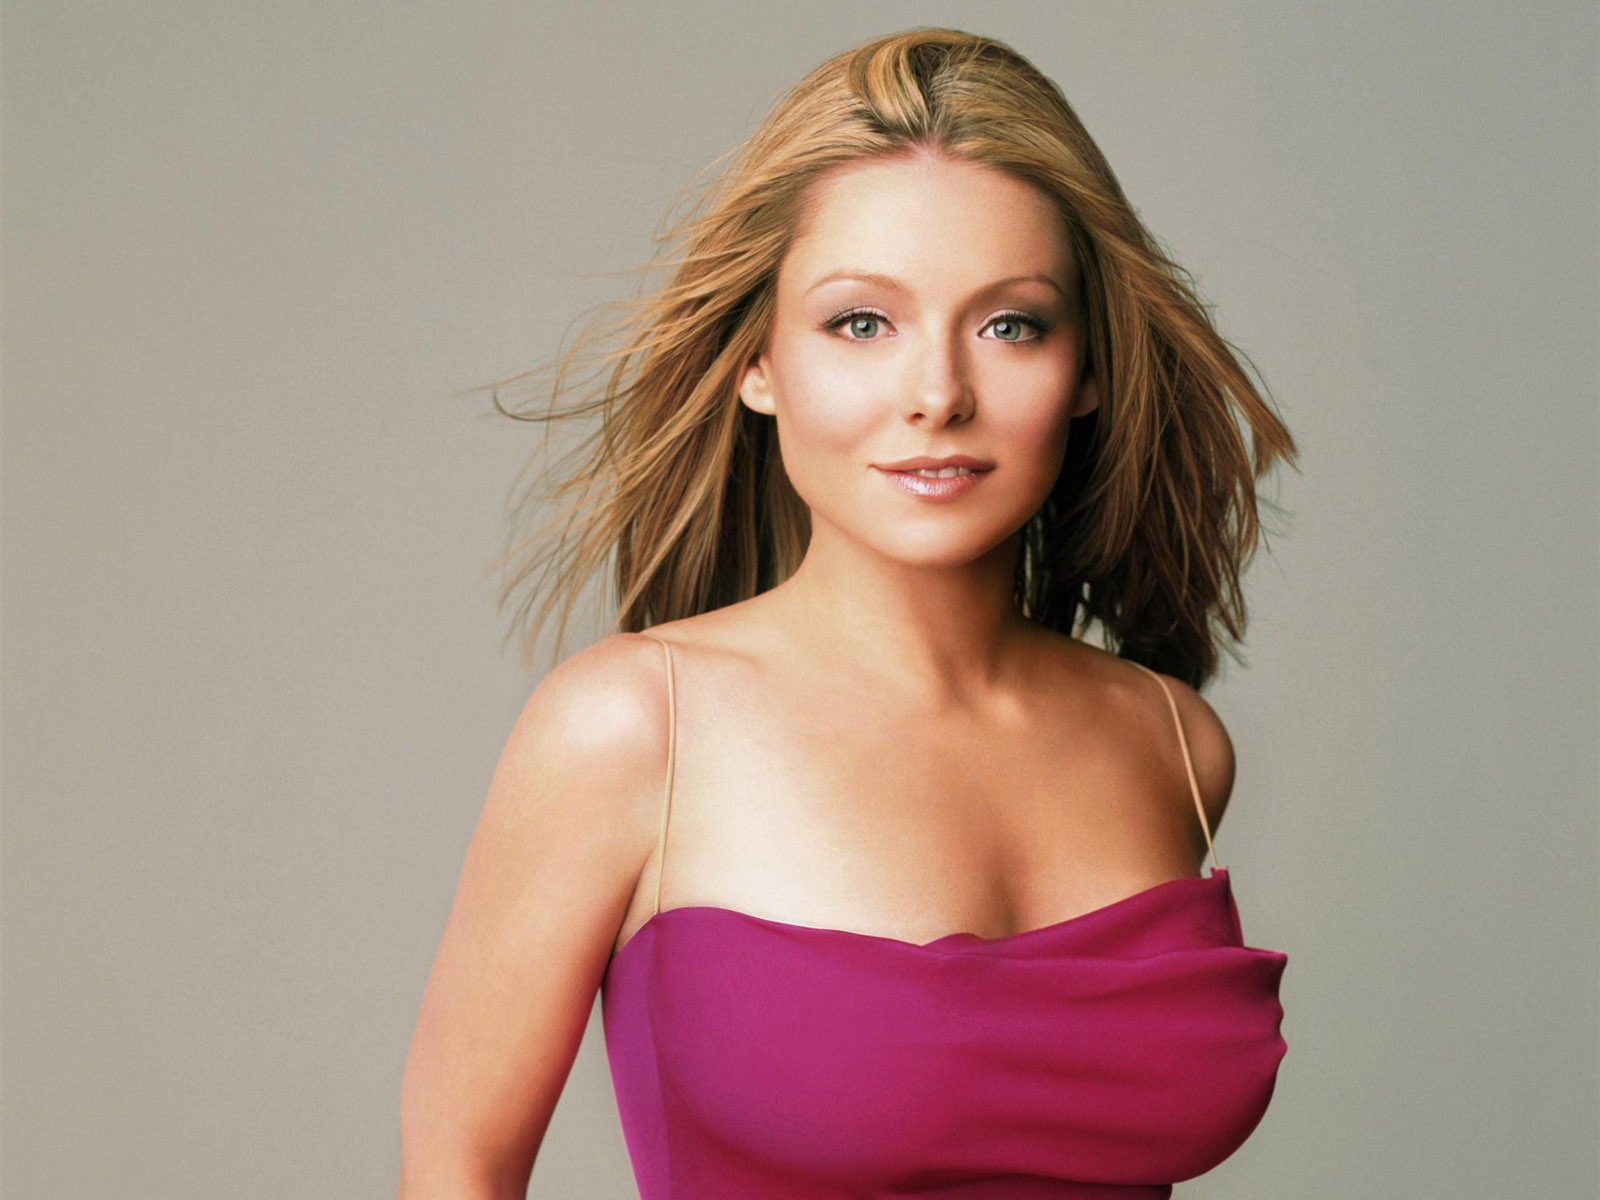 Kelly ripa wallpapers